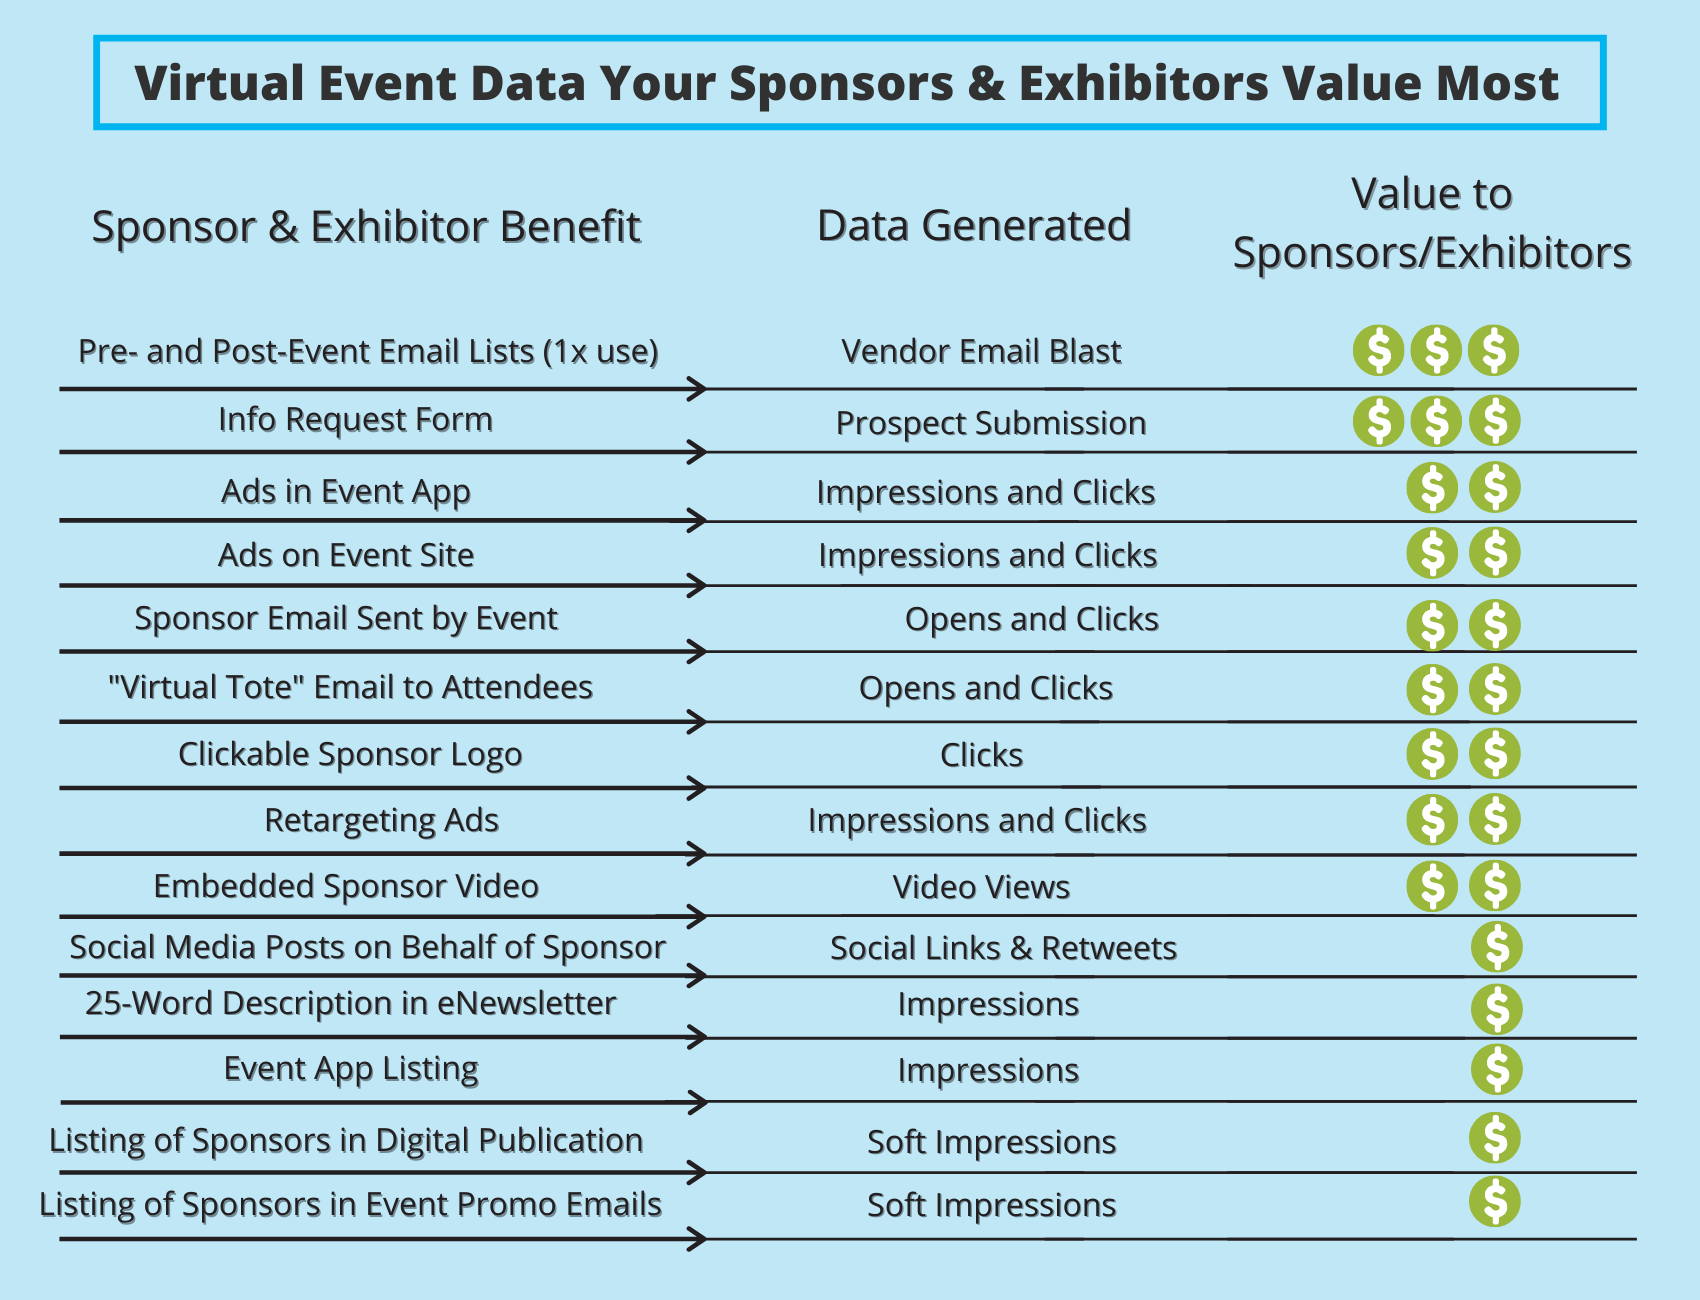 Virtual Event Data - Value to Sponsors & Exhibitors